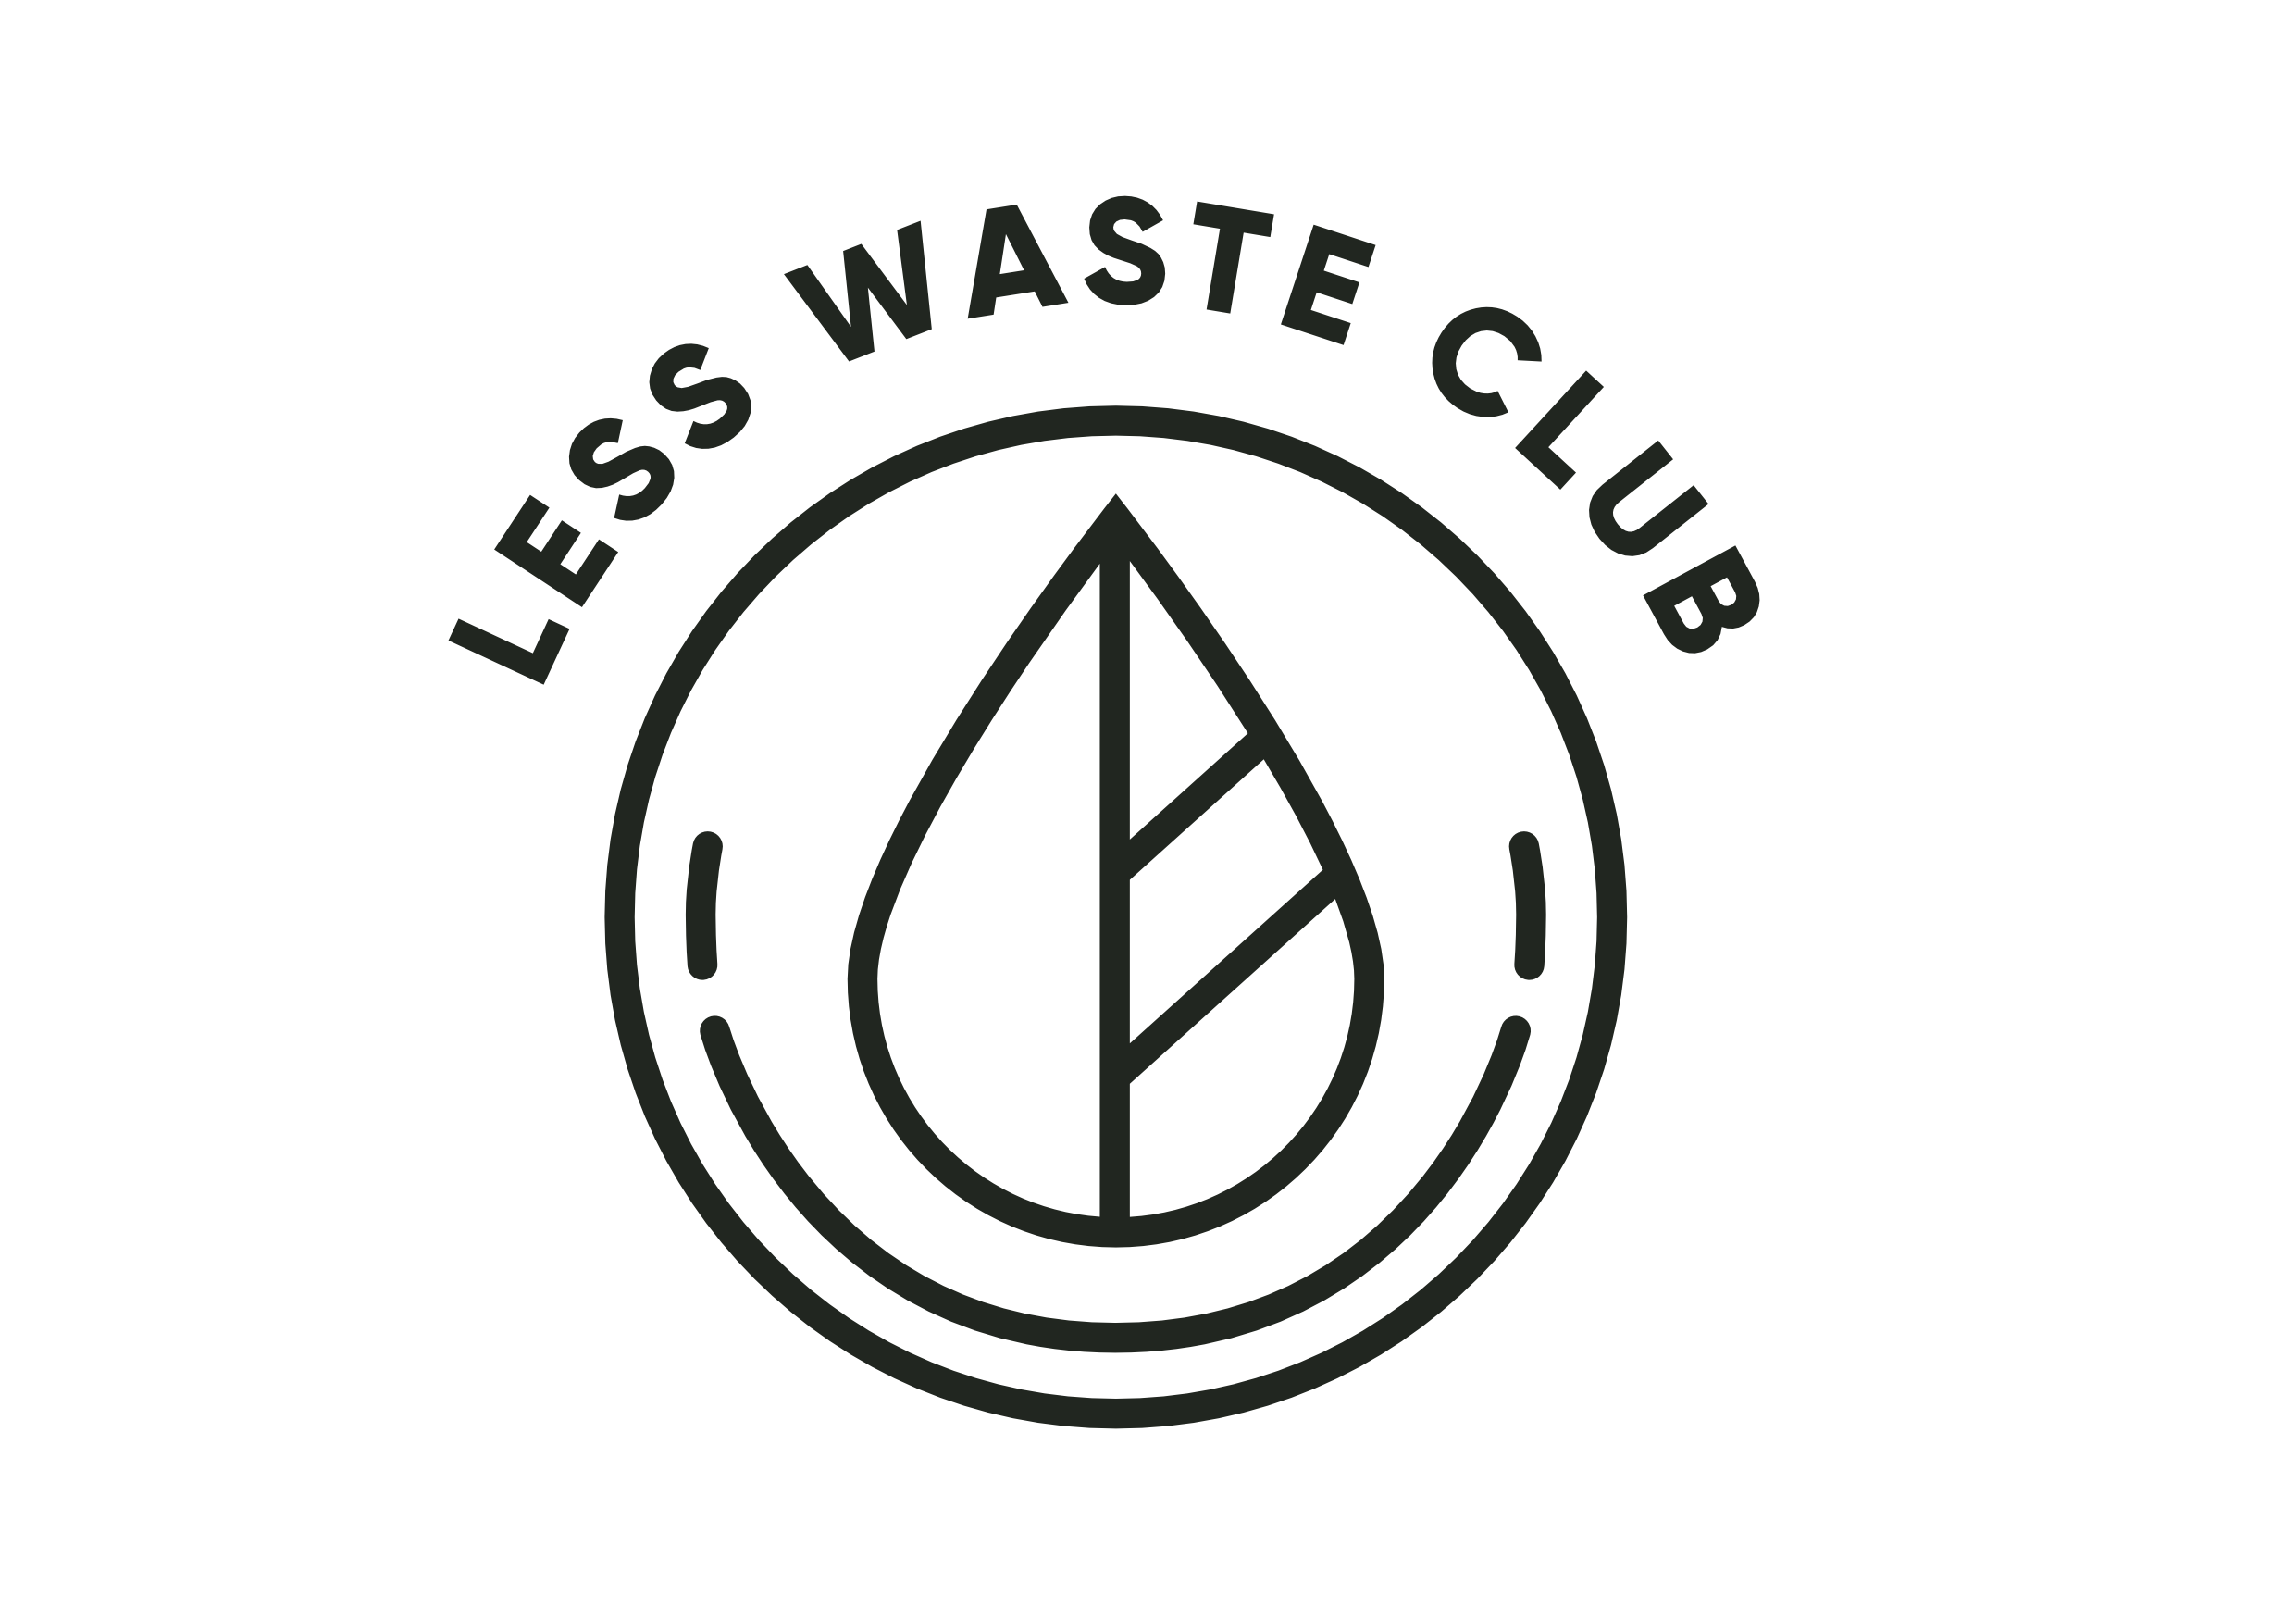 Less Waste Club